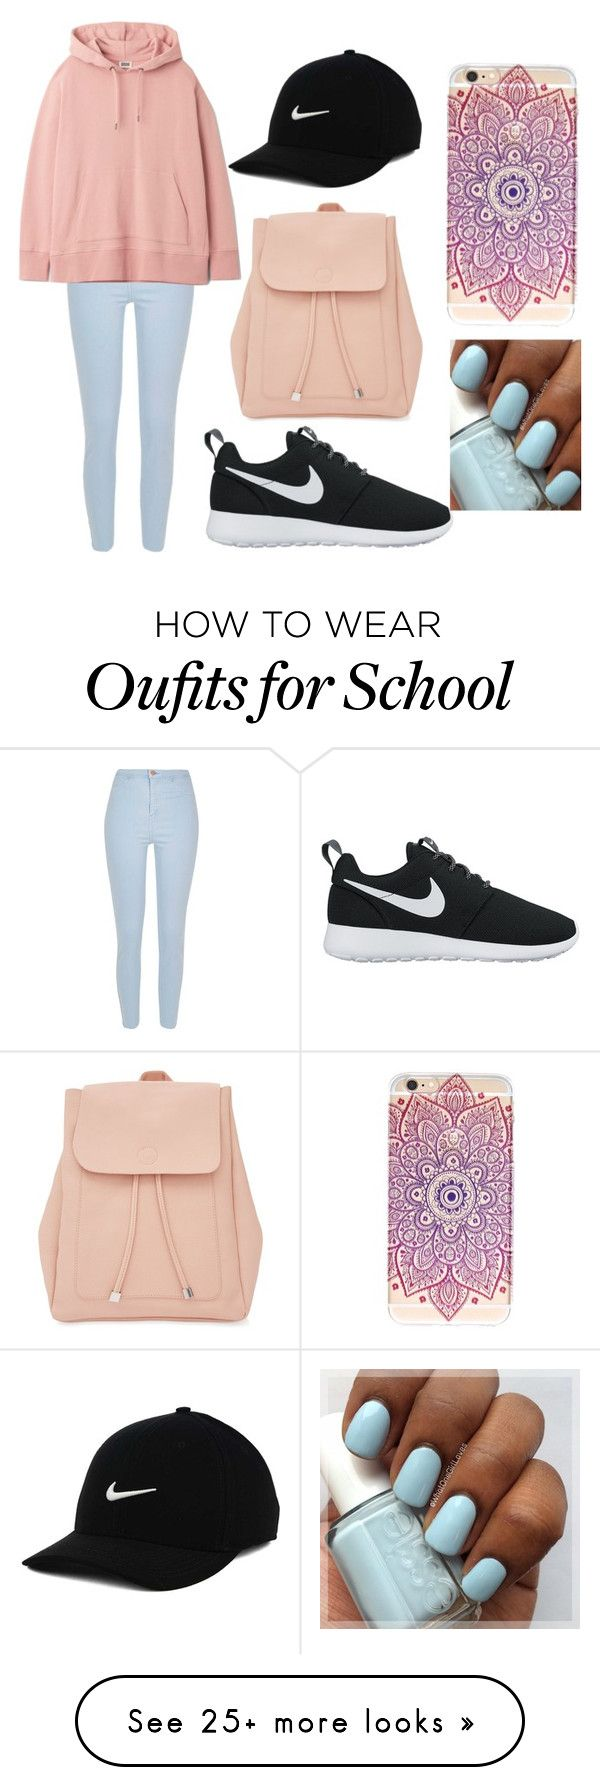 """""""school again?"""" by destgreen on Polyvore featuring River Island, NIKE and New Look"""